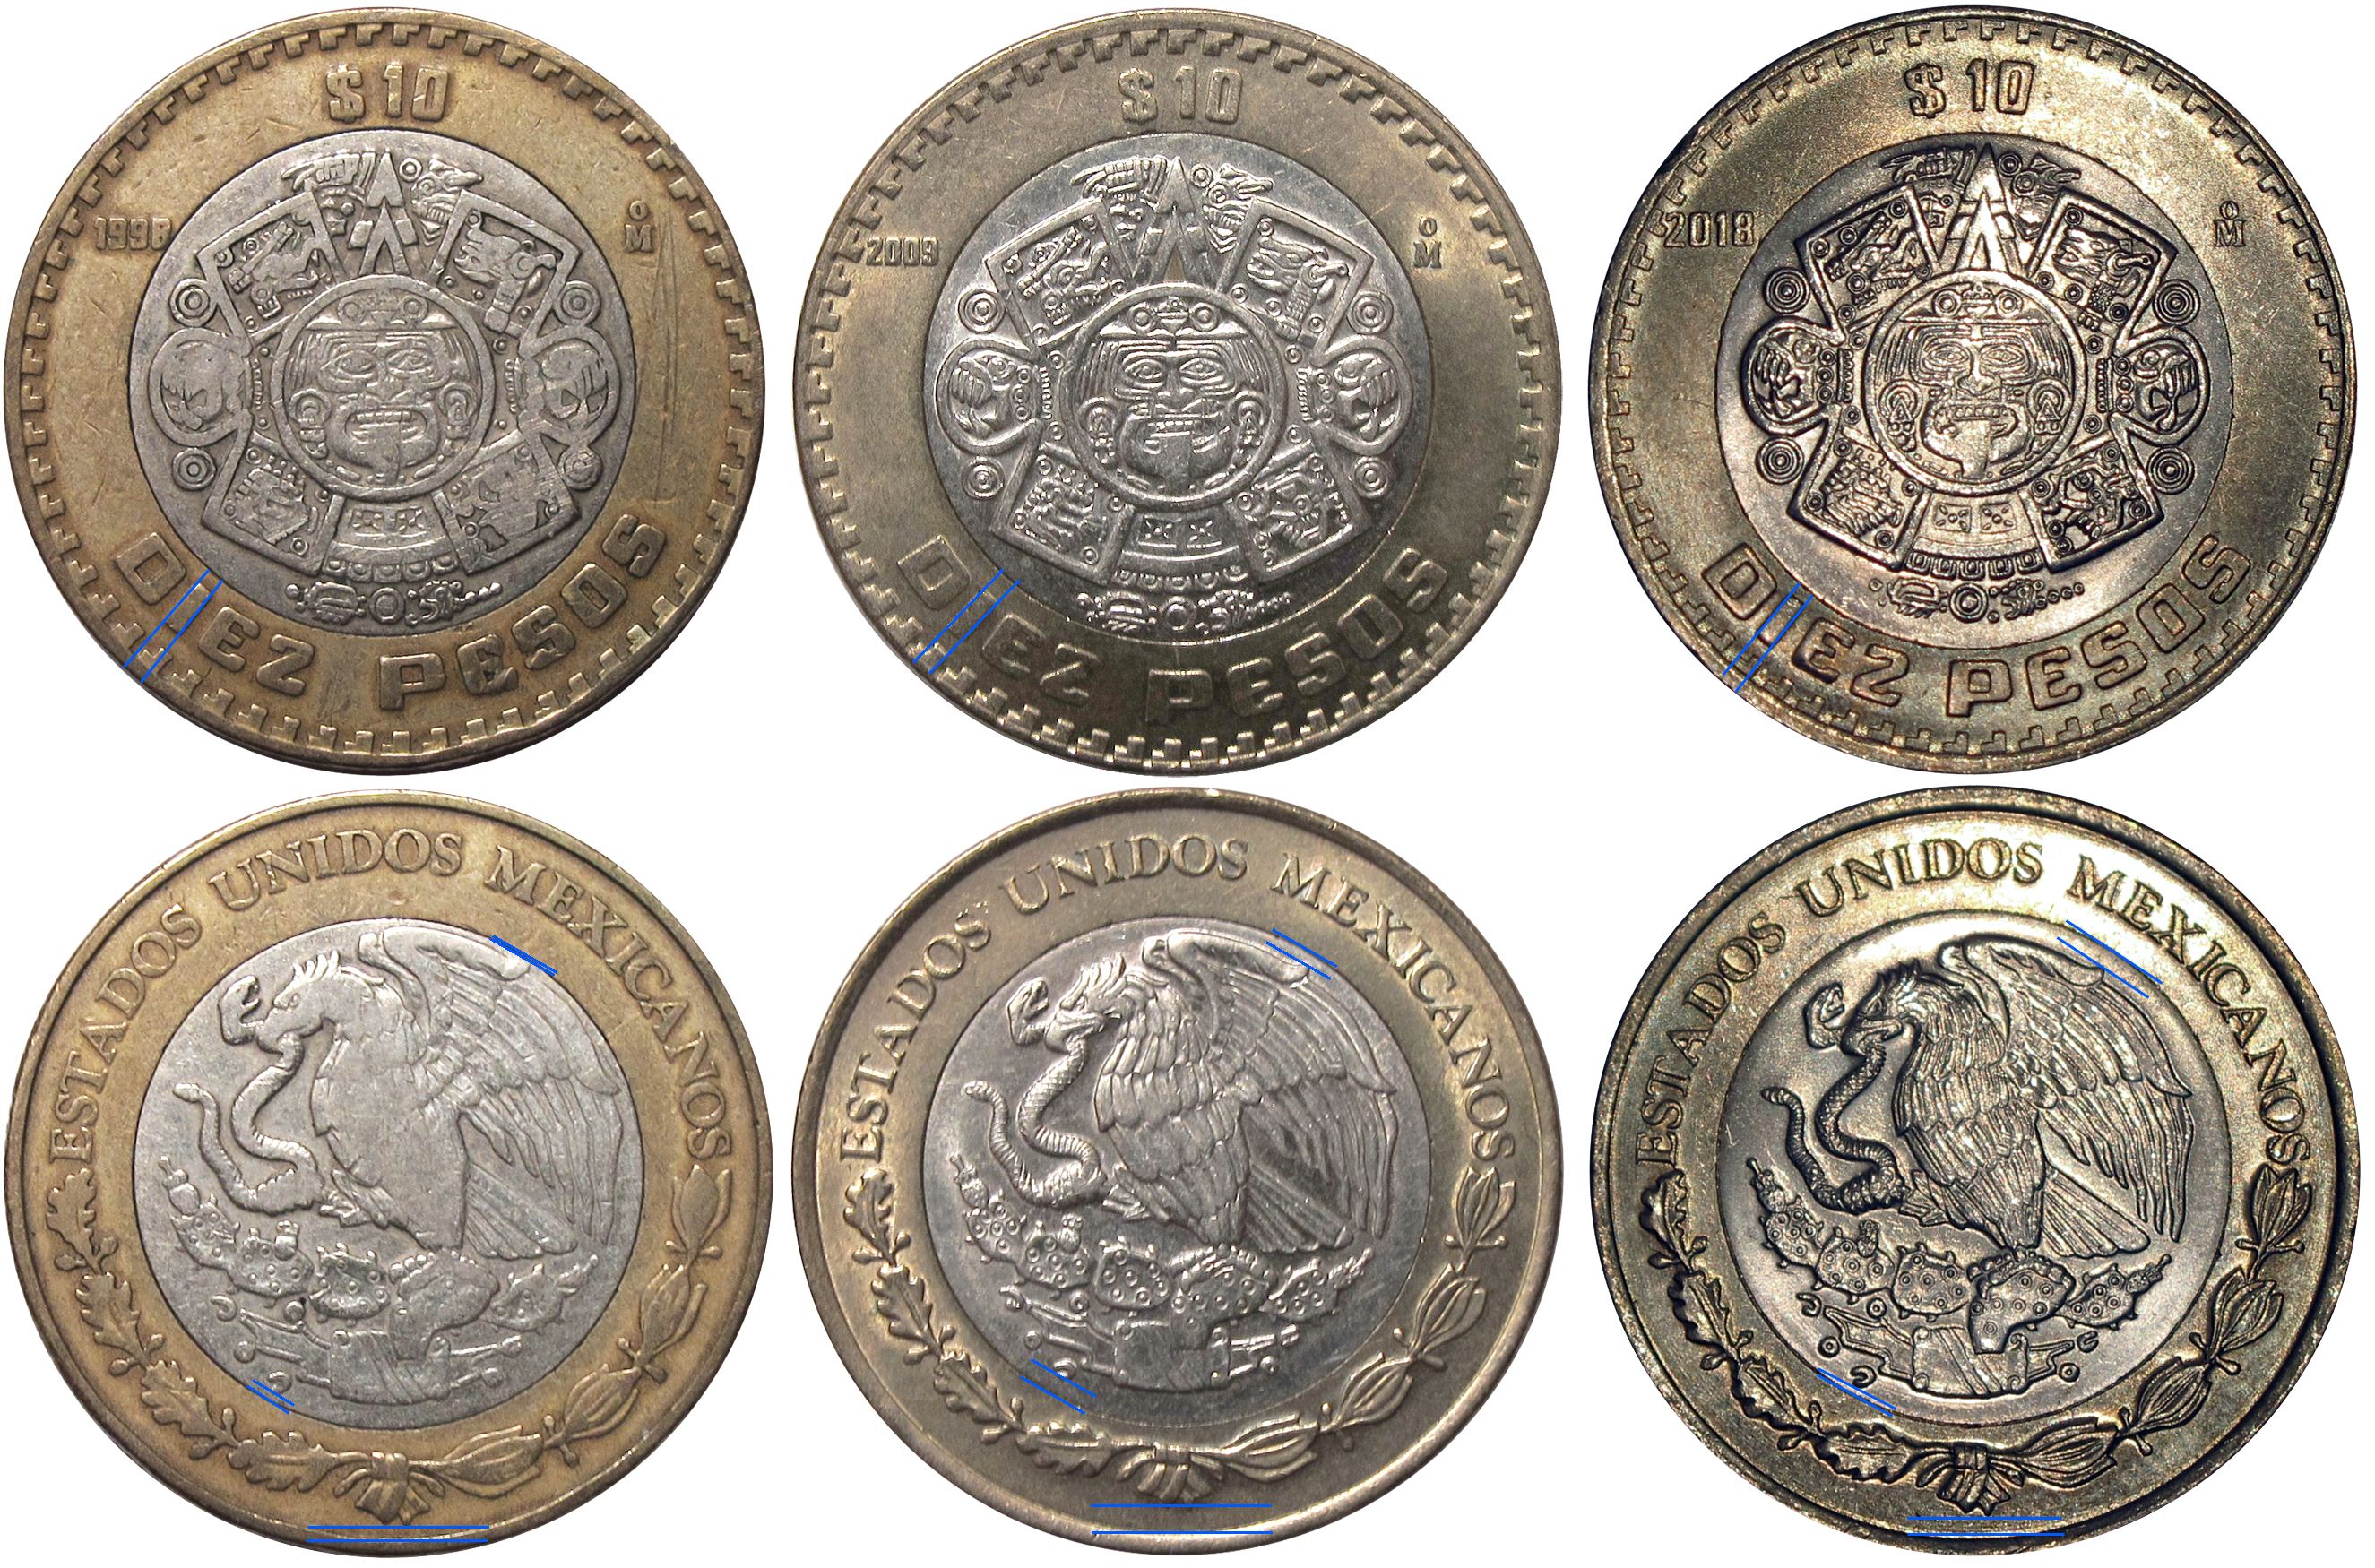 How Much Is A 10 Peso Coin Worth June 2020